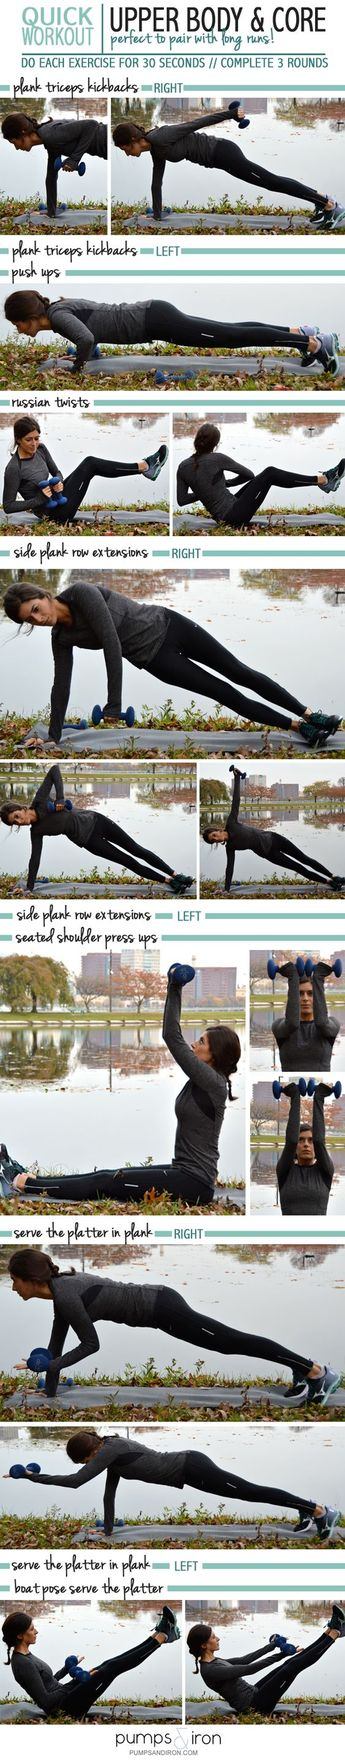 Quick Upper Body & Core Workout (Perfect to Pair with Running